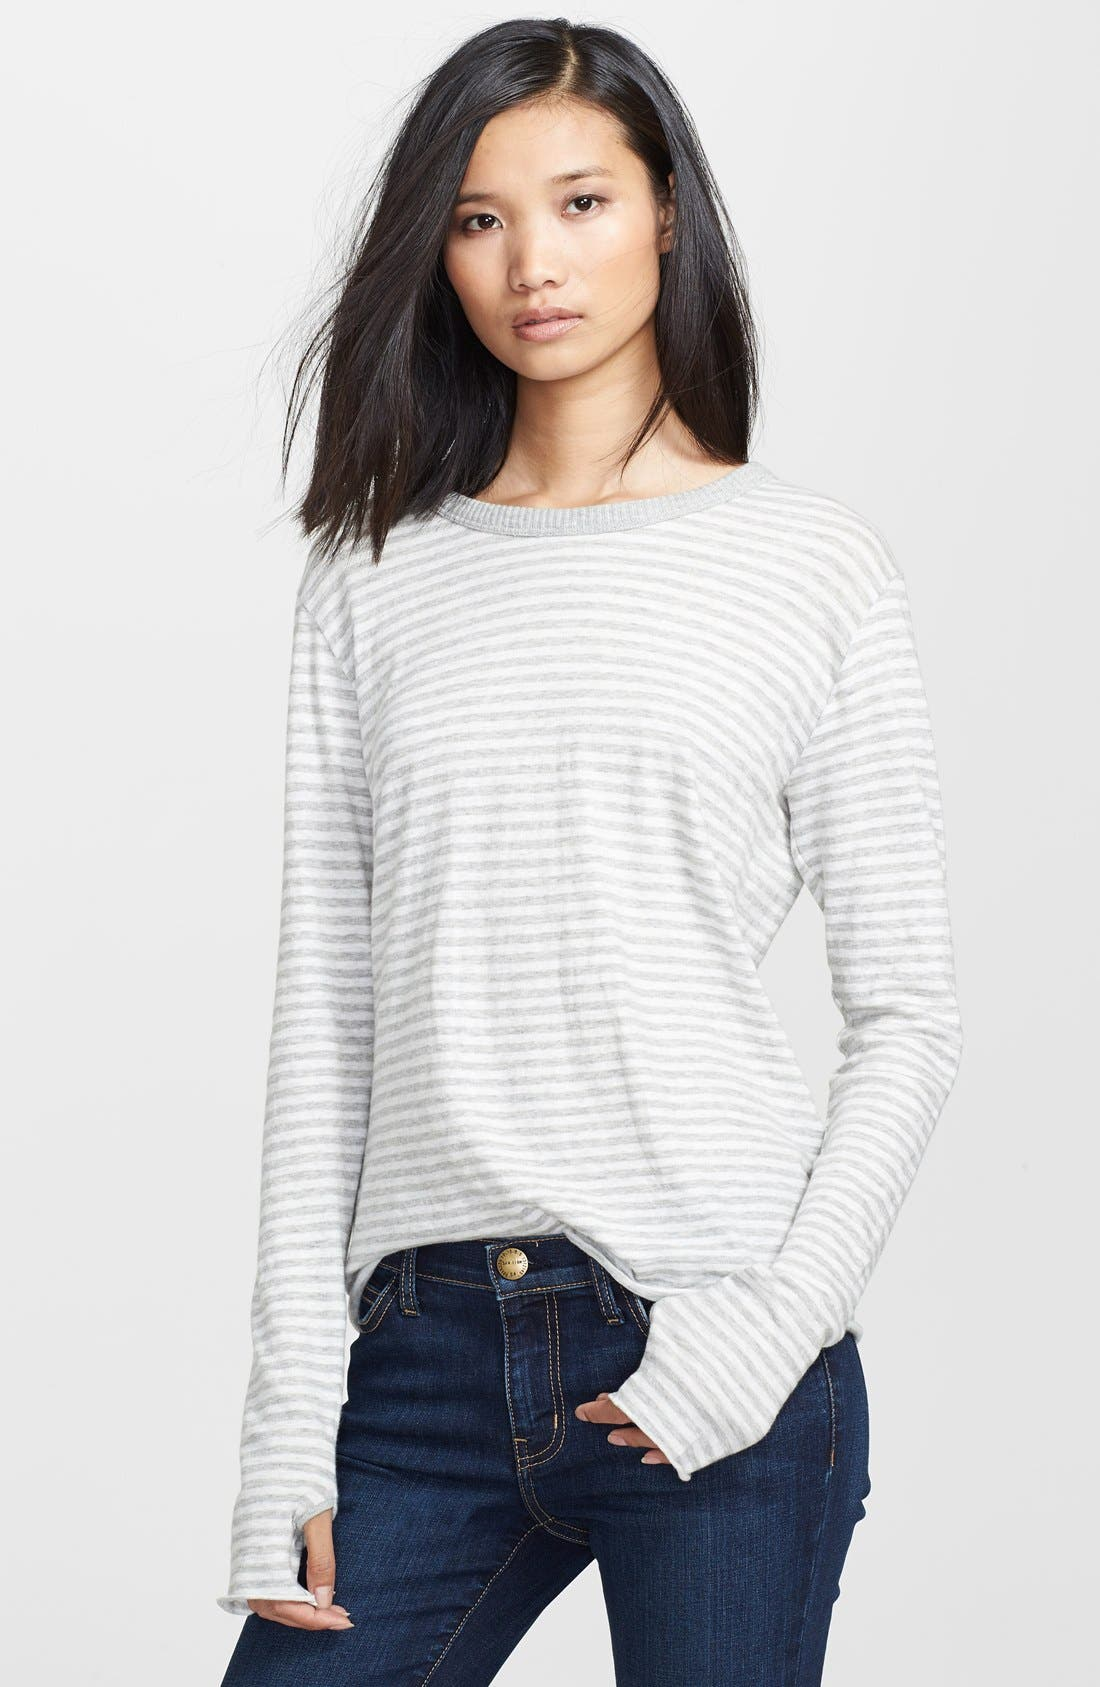 Alternate Image 1 Selected - Enza Costa Stripe Cotton & Cashmere Tee